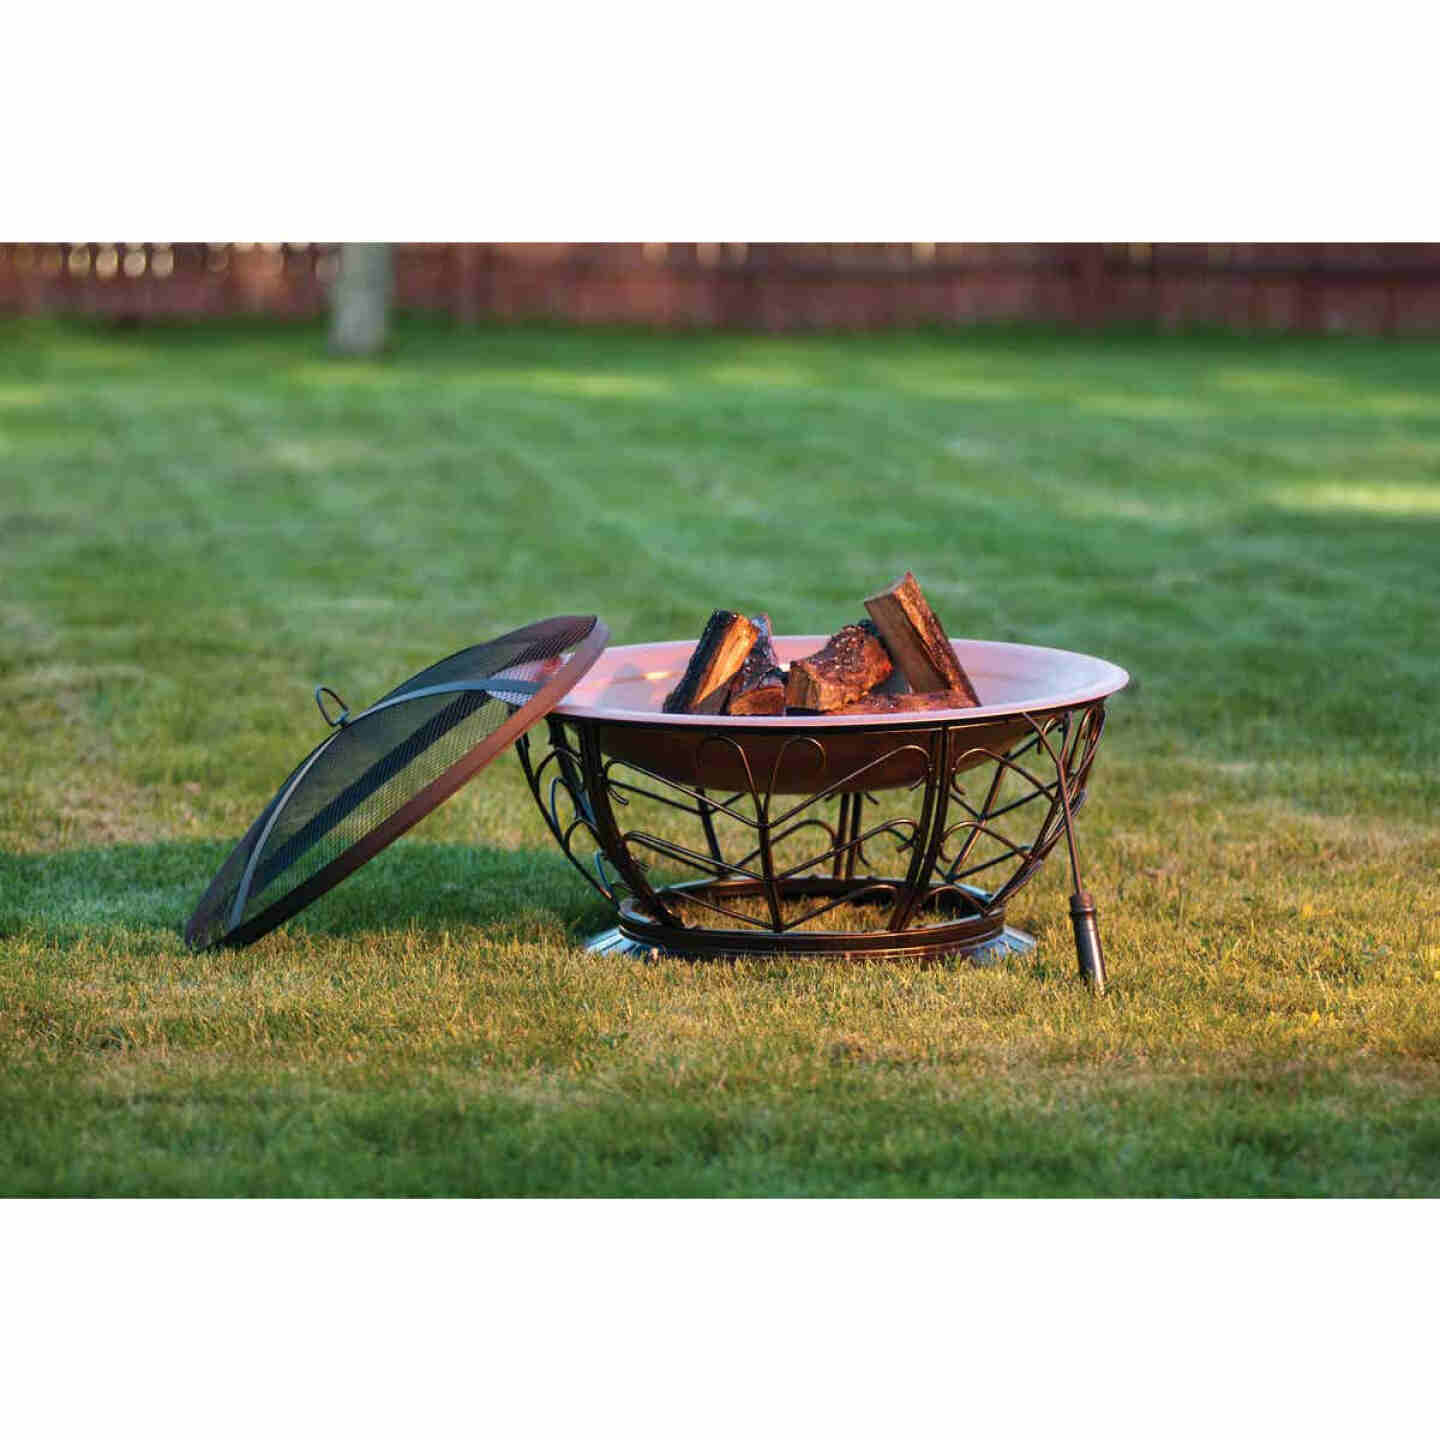 Outdoor Expressions 30 In. Coppertone Round Steel Fire Pit Image 3